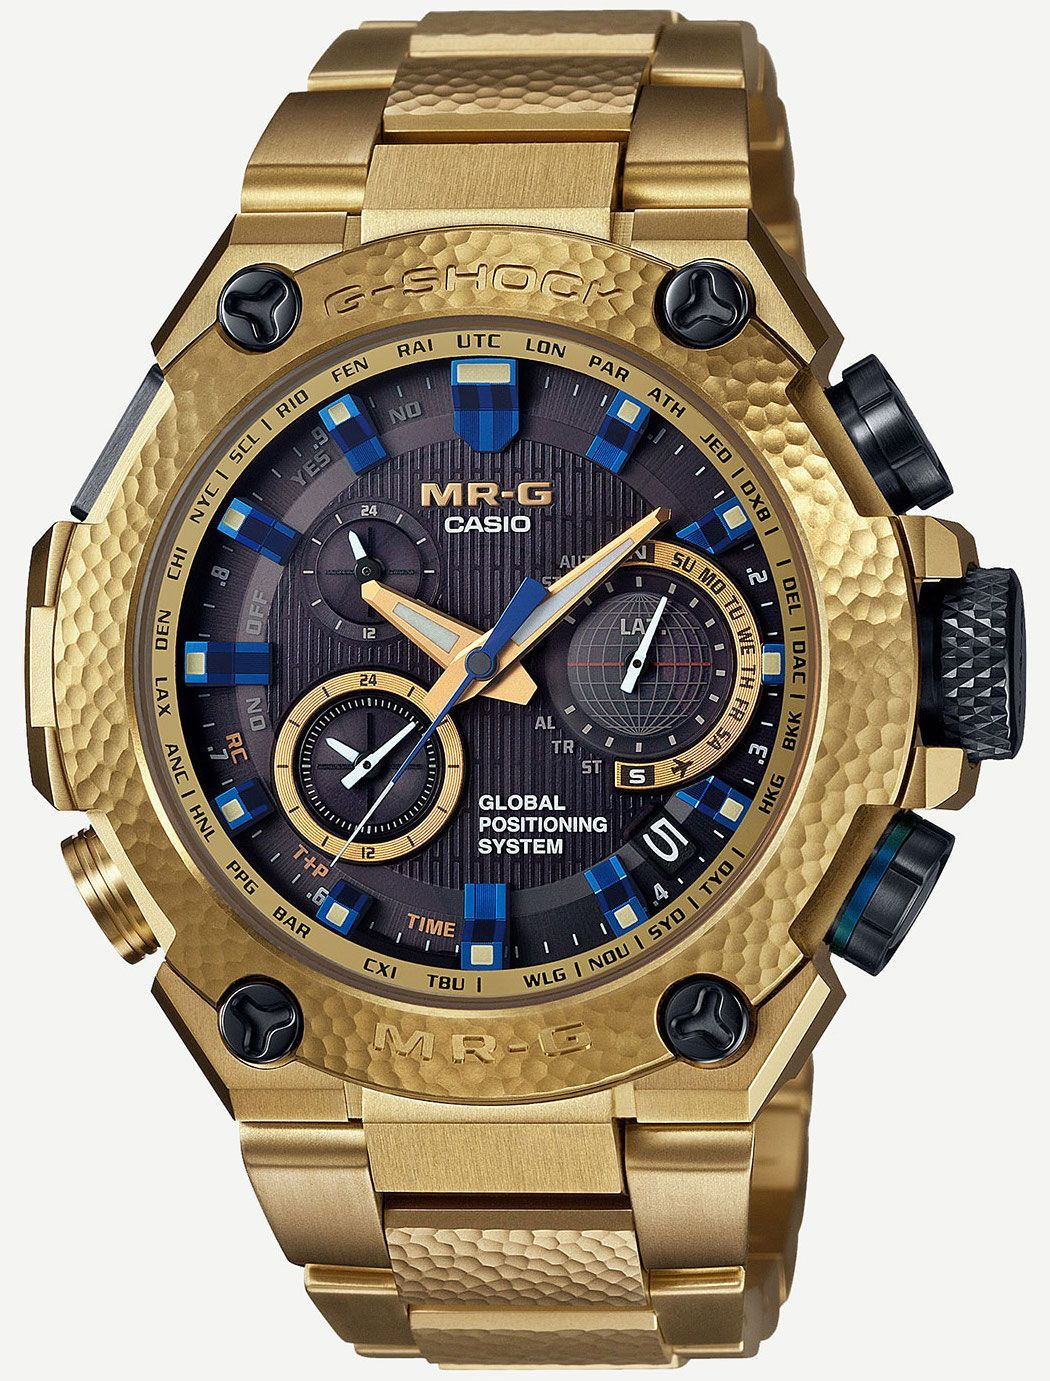 806f12c75db Casio G-Shock Gold Hammer Tone MRGG1000HG-9A Watch – by David Bredan – One  of the most outrageous